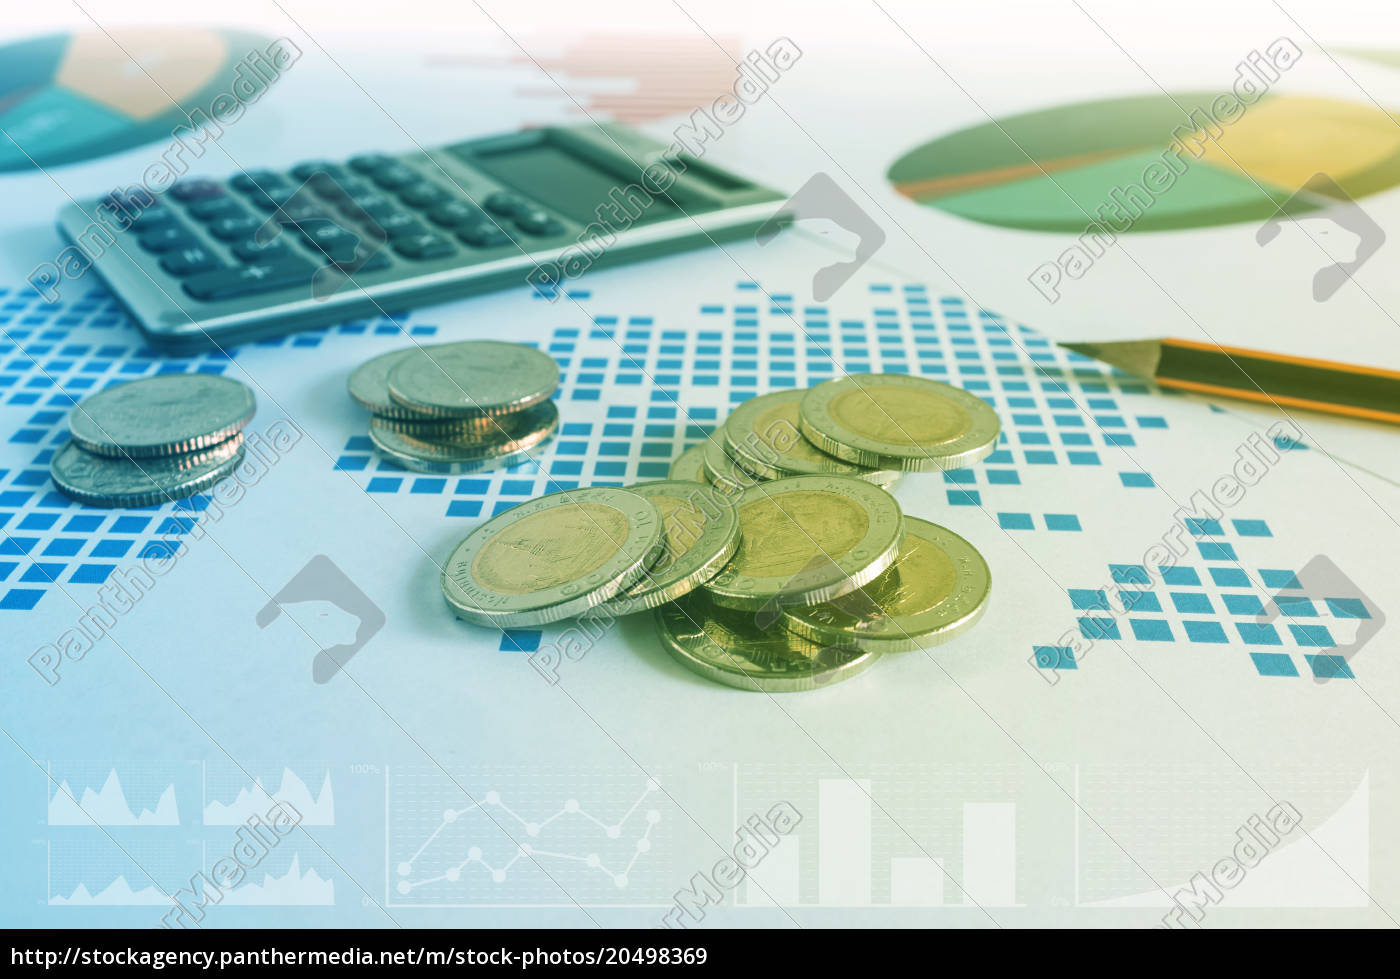 coin, stacks, , calculator, and, pencil, on - 20498369